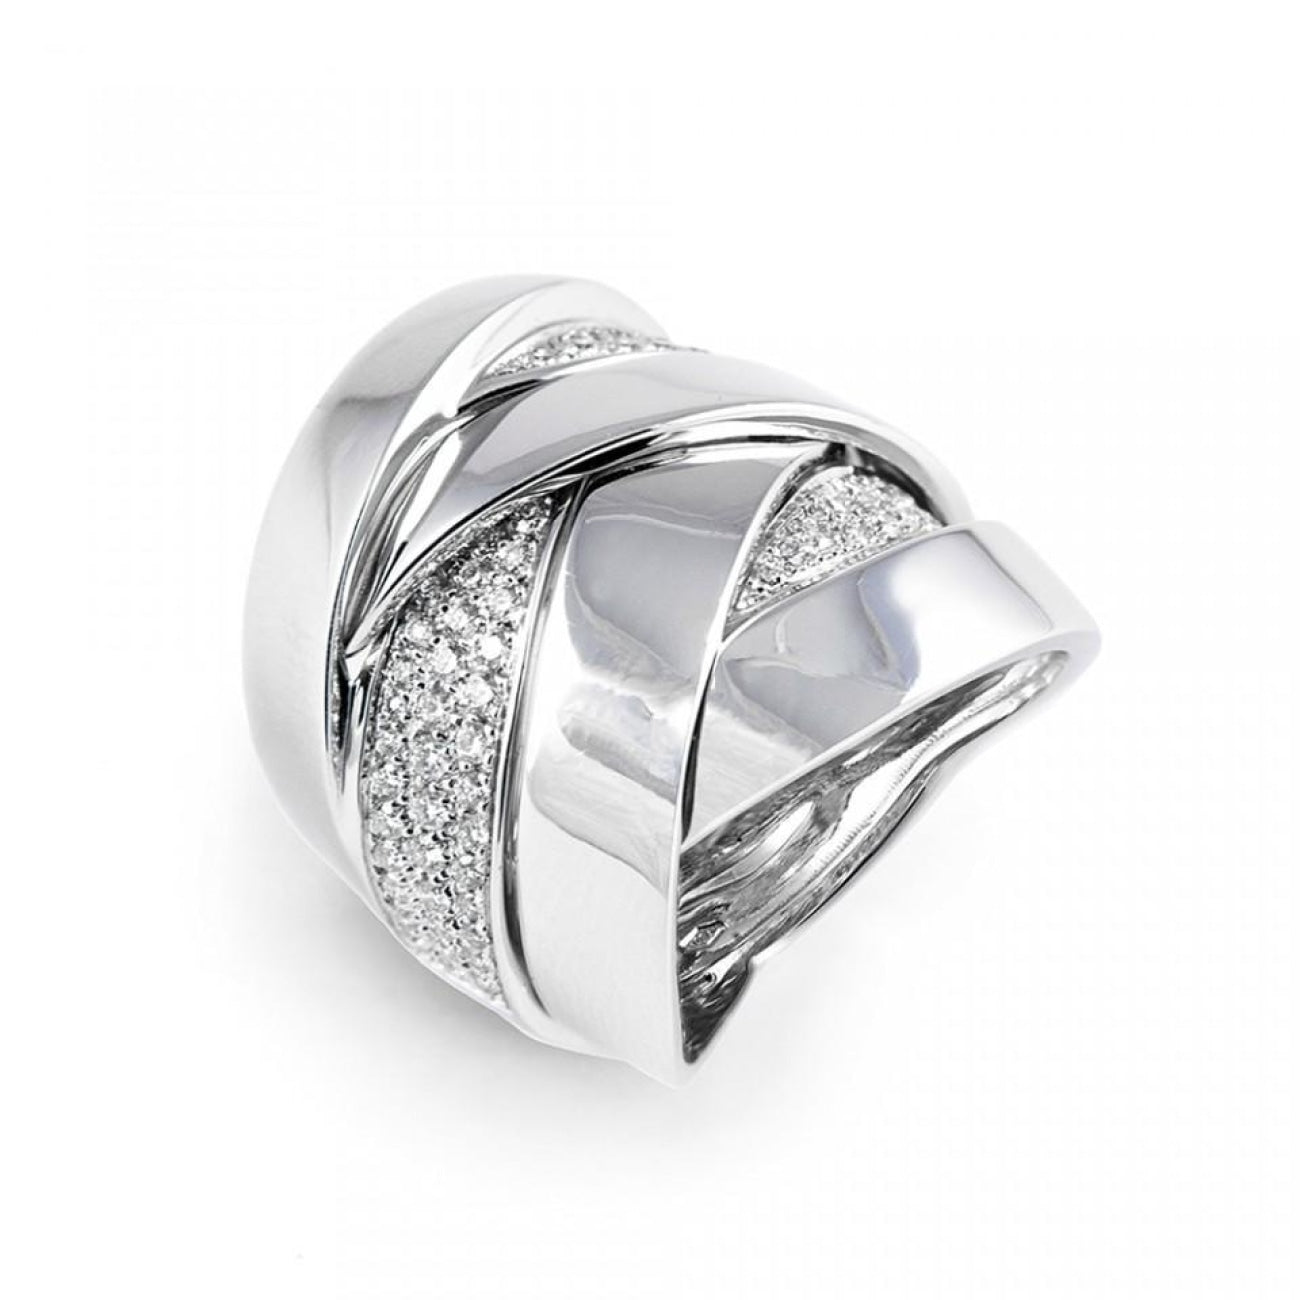 Mattioli Jewelry - 18KT WHITE GOLD MALDAMORE RING | Manfredi Jewels